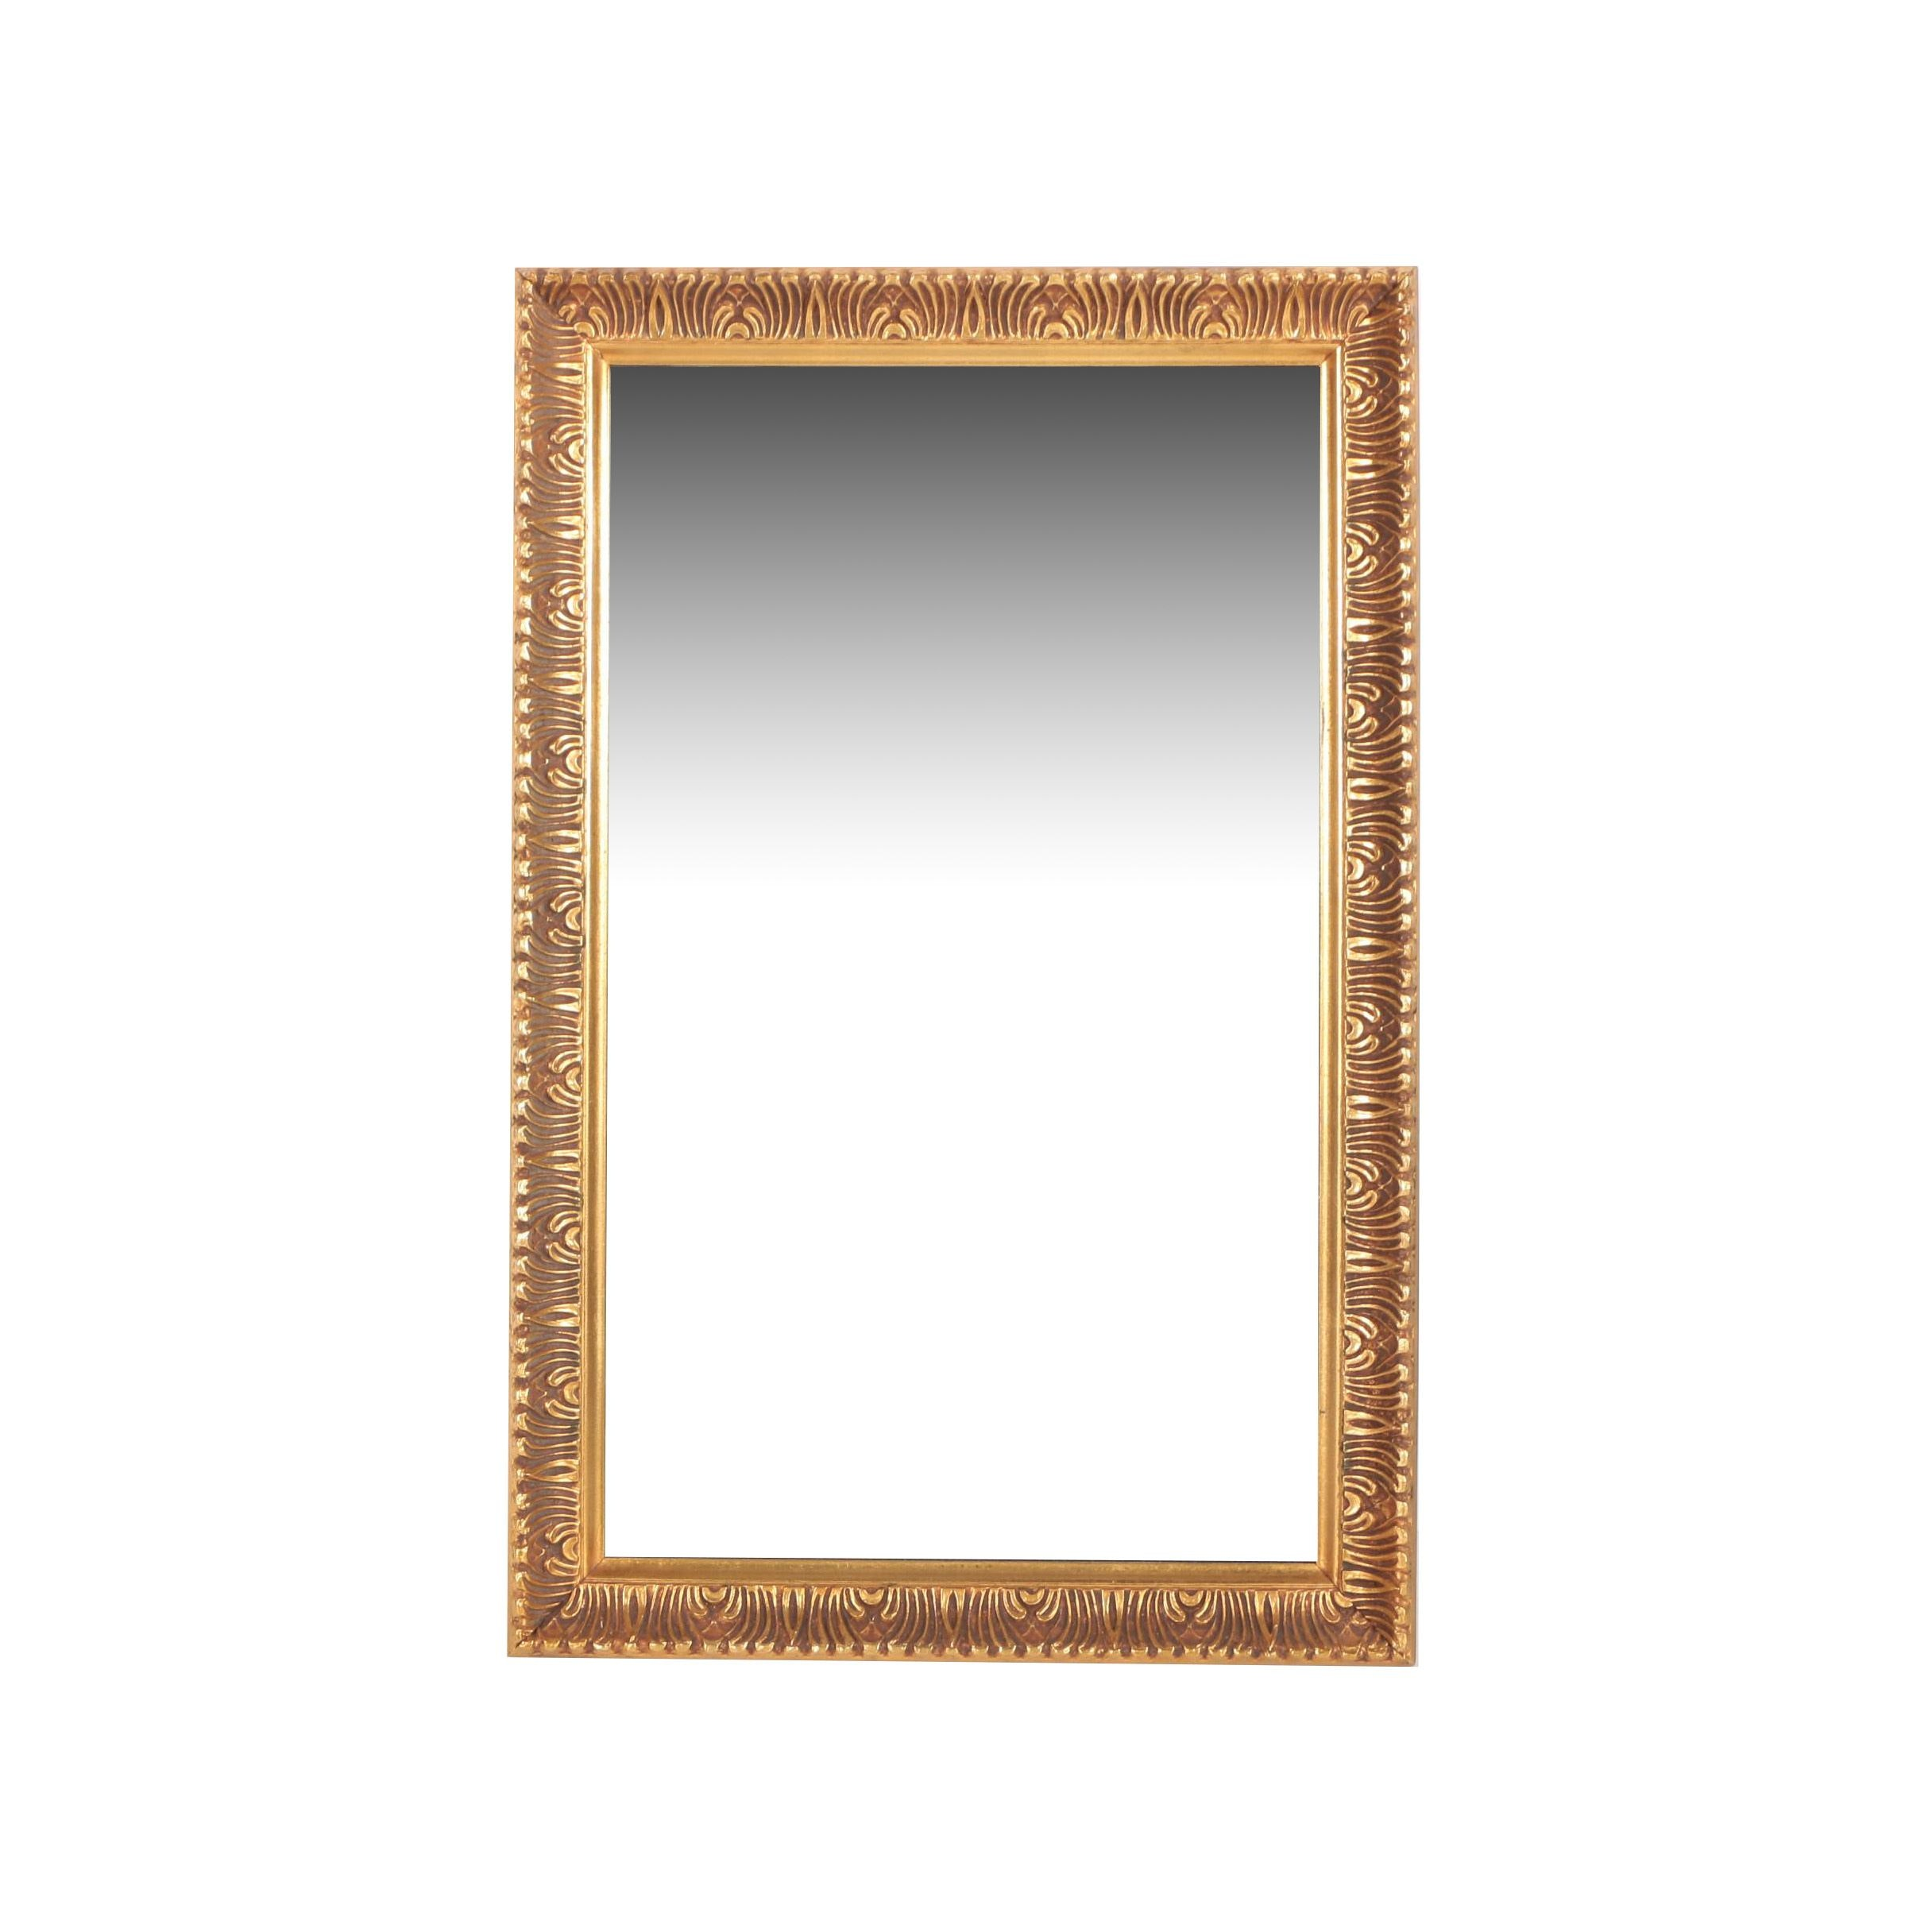 Gilt Finished Molded Wooden Framed Wall Mirror by Illinois Moulding Co.